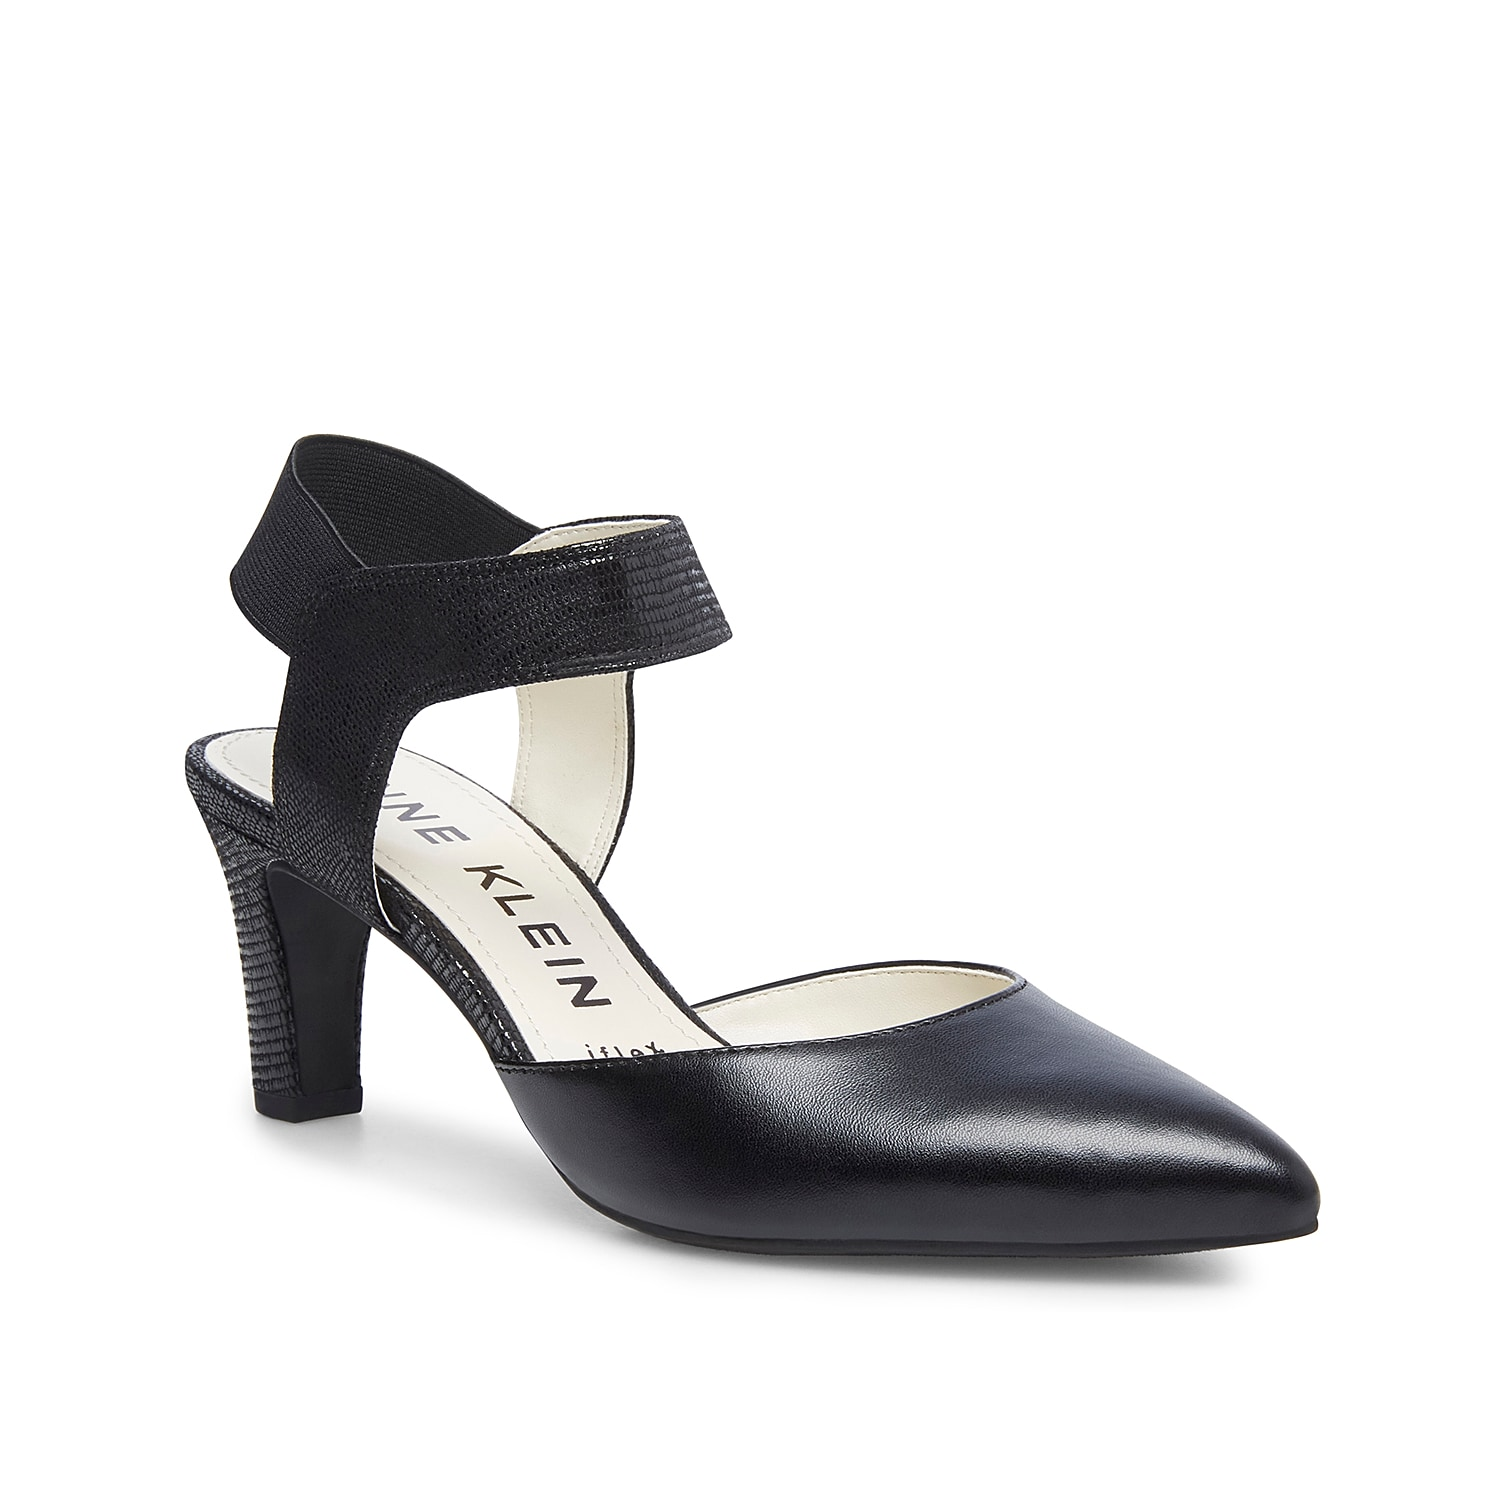 Upgrade your late night looks with the Katia pump from Anne Klein. This silhouette is fashioned with an iflex cushioned footbed and an elastic slingback strap for sturdy steps!